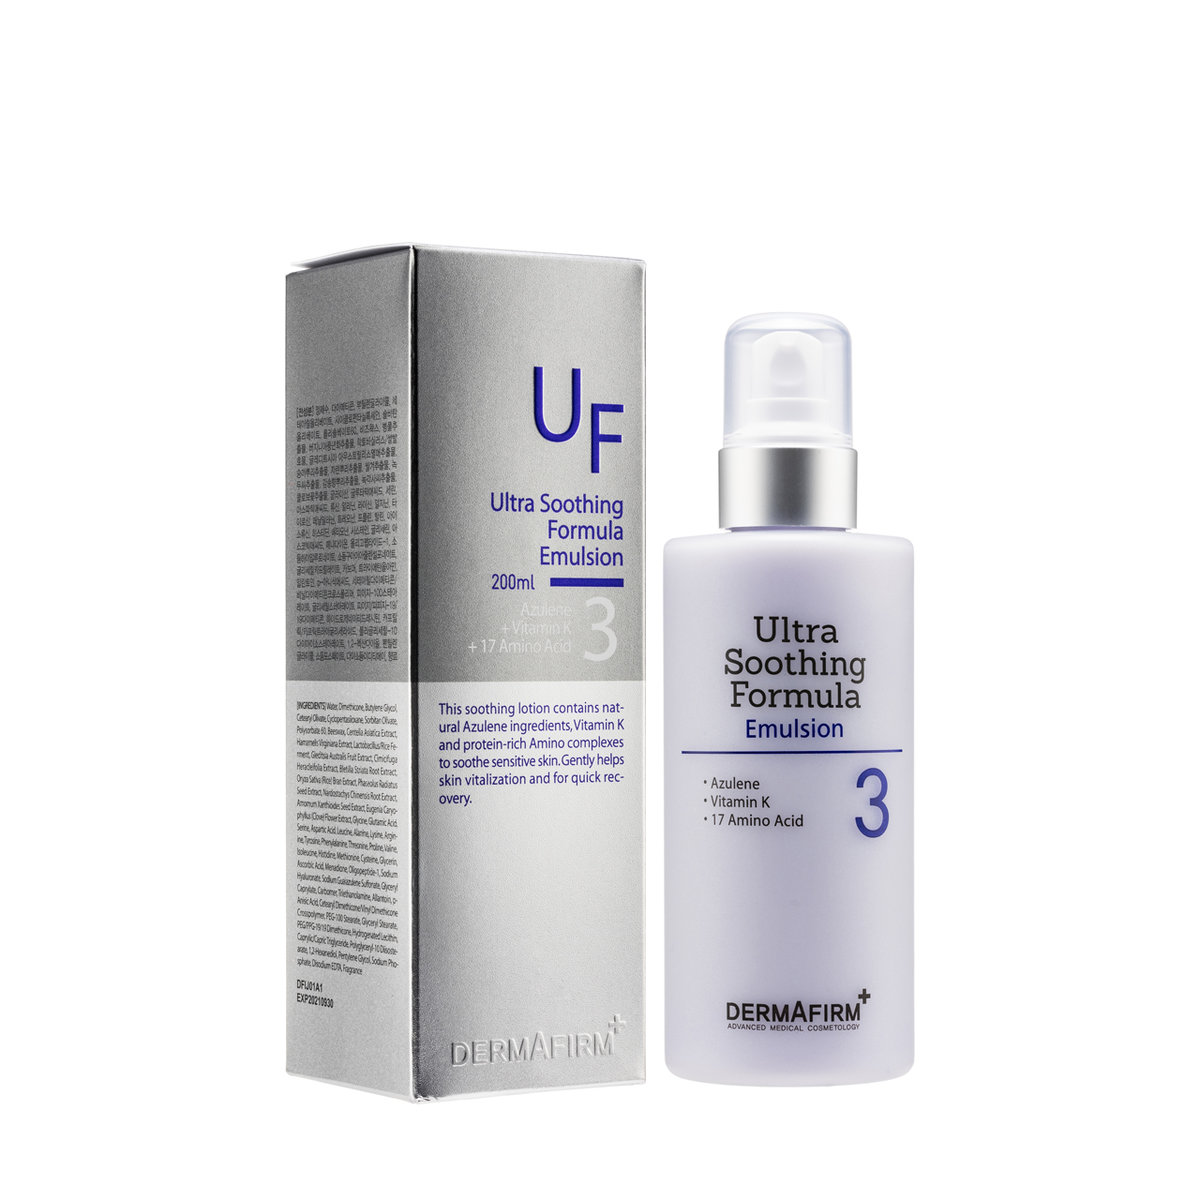 Ultra Soothing Formula Emulsion (200ml) [Parallel Import]